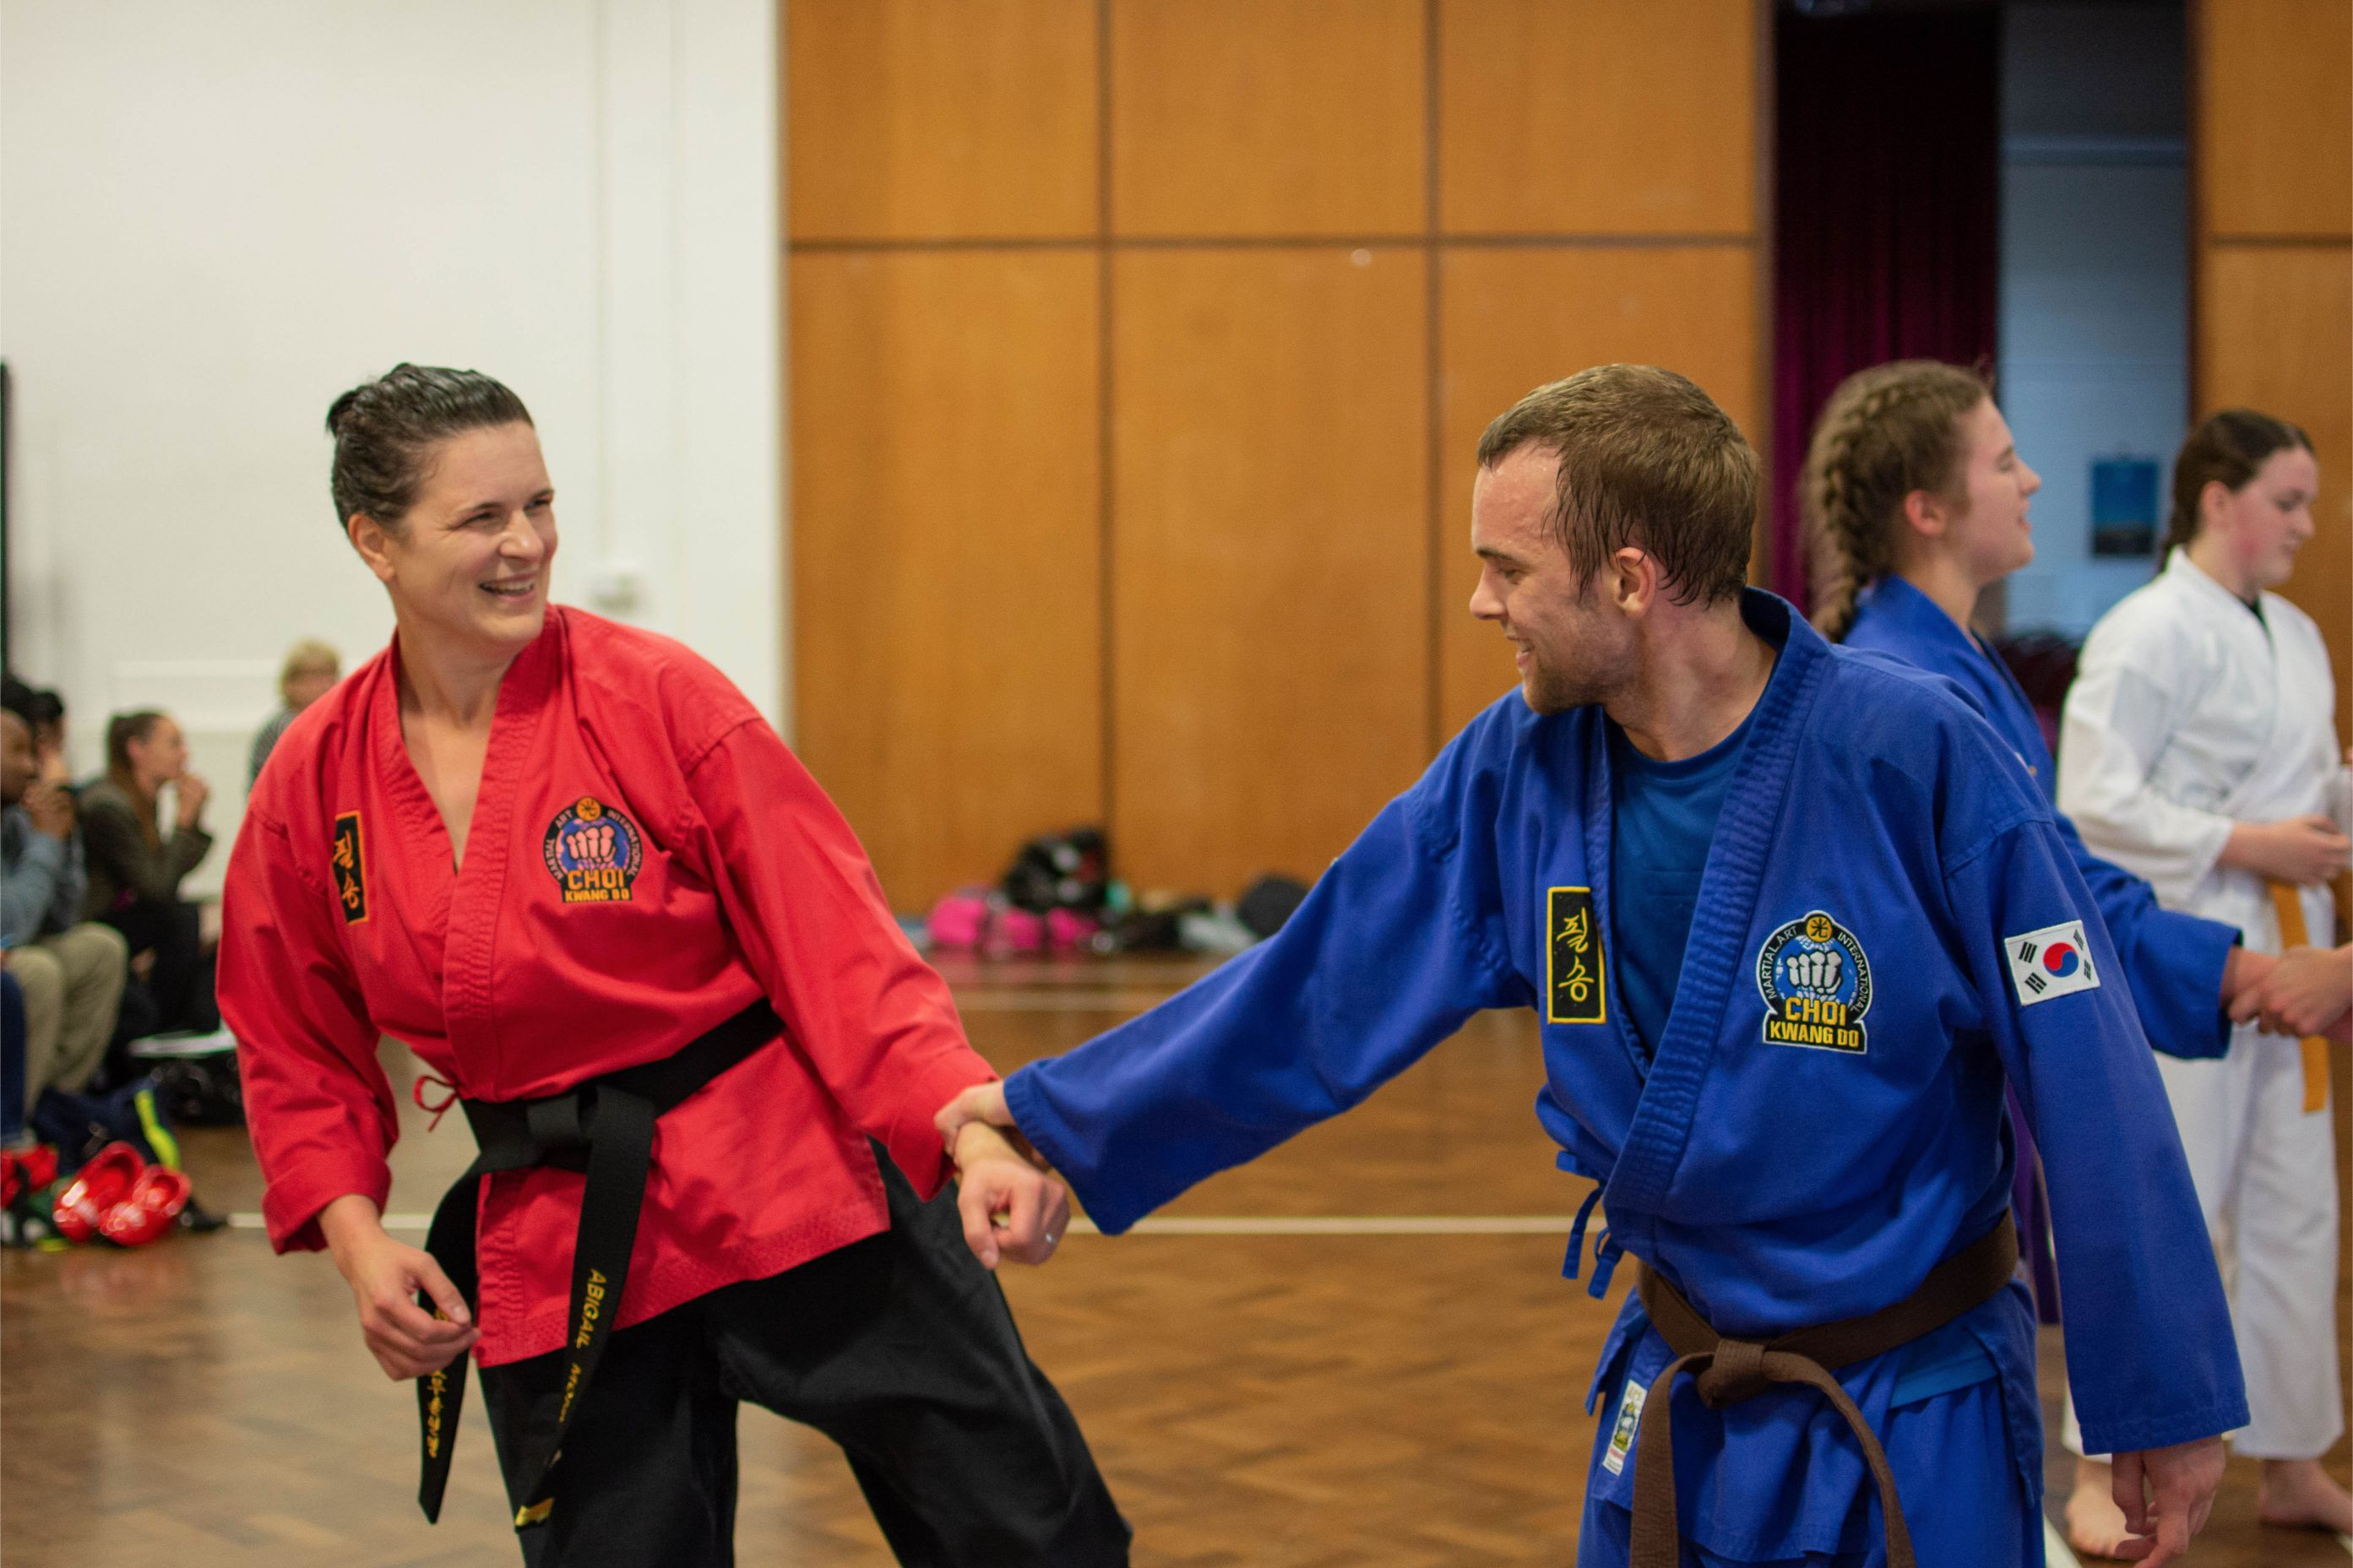 Lady and man doing martial arts